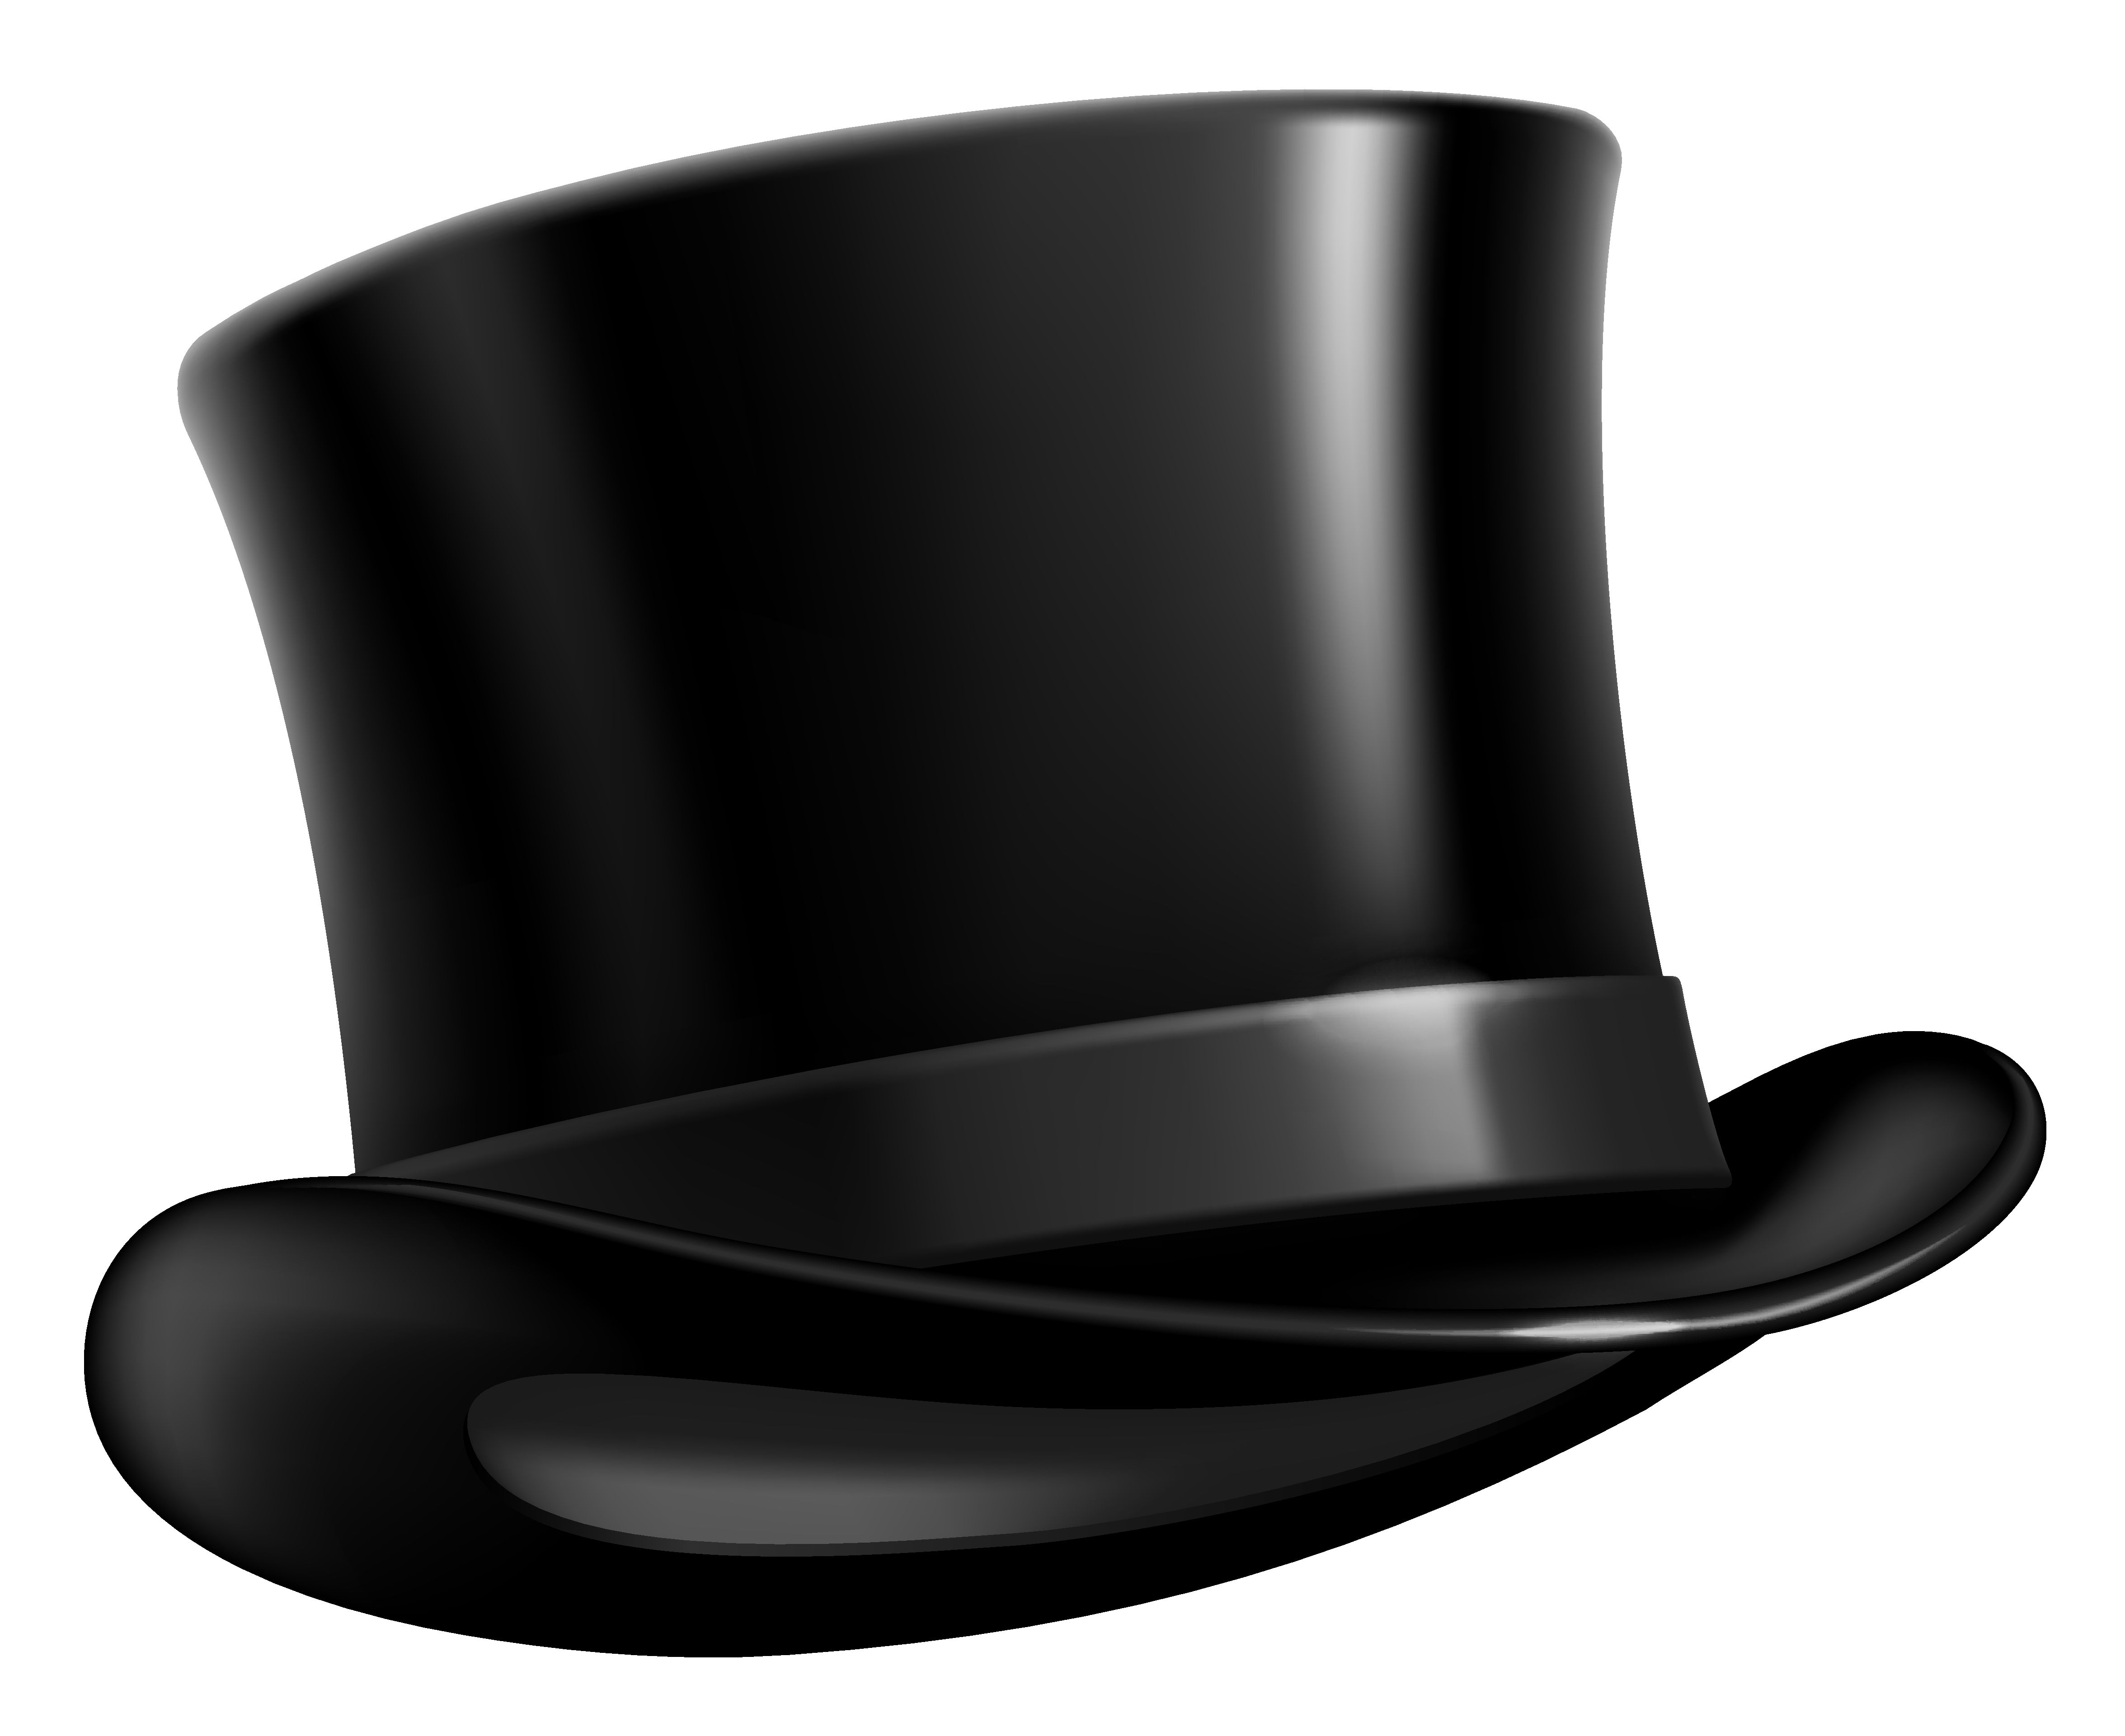 Free Black Hat Cliparts, Download Free Clip Art, Free Clip Art on.